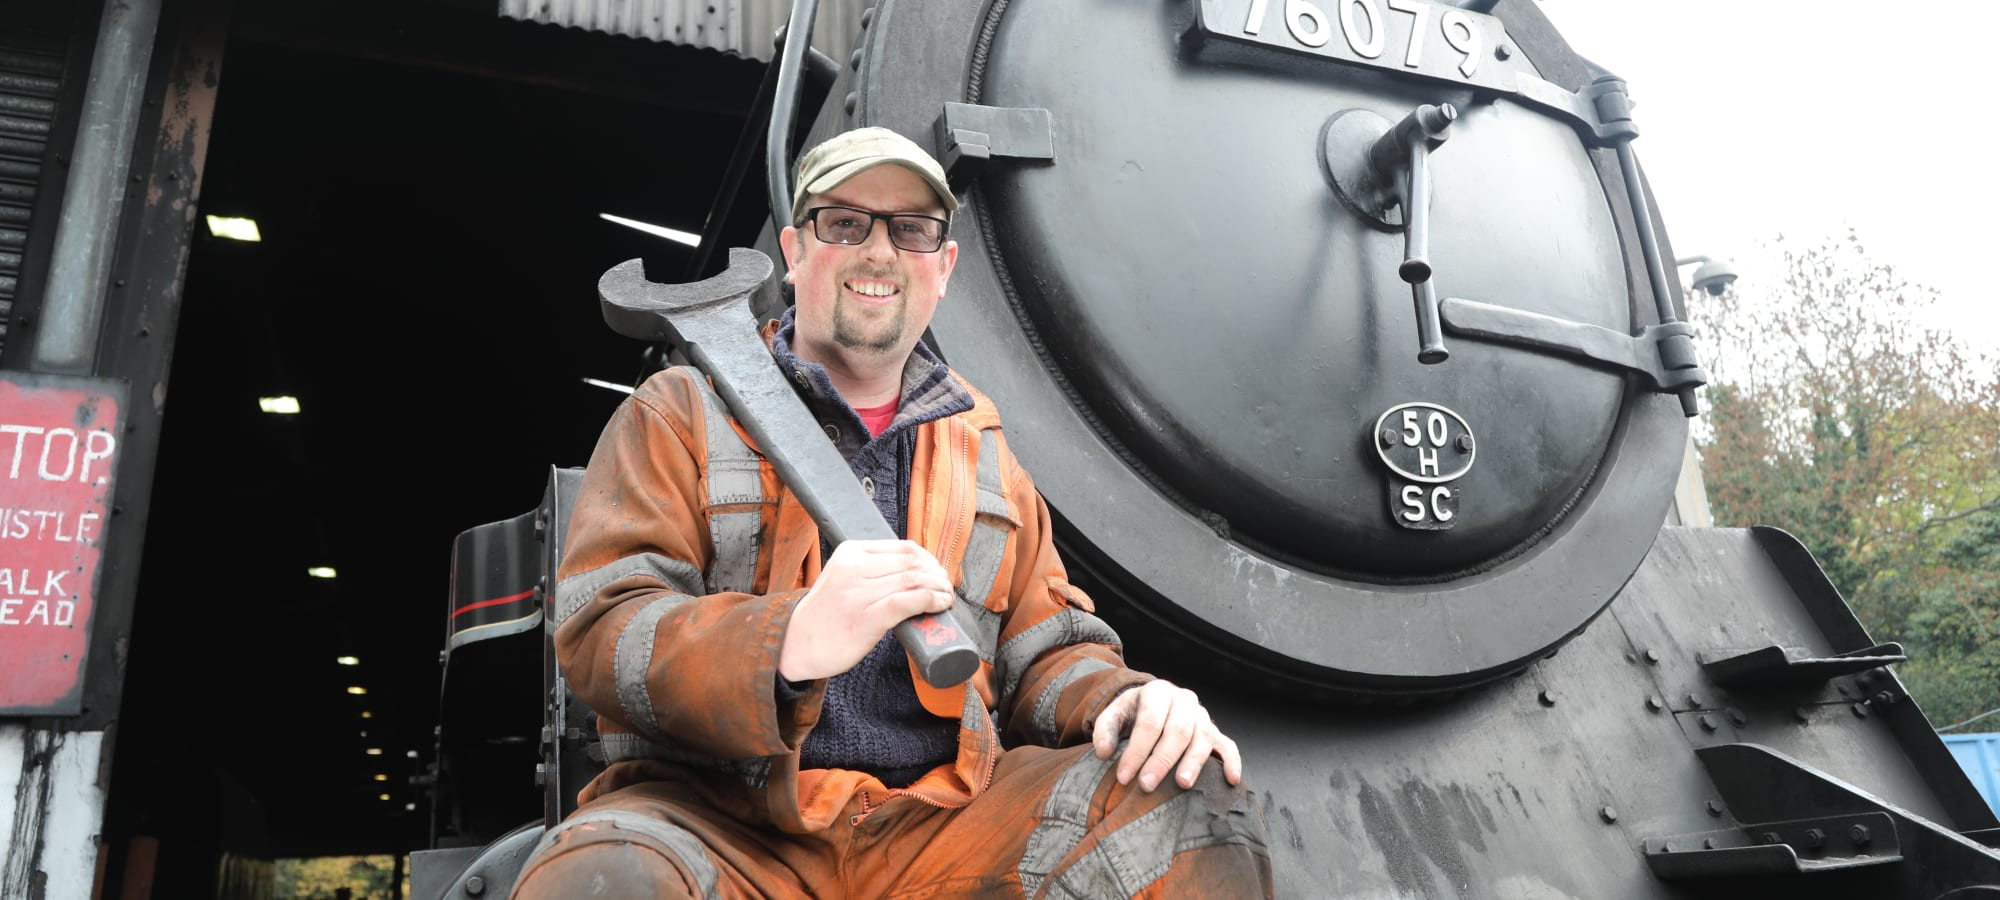 Learn about the inner workings of a heritage railway!